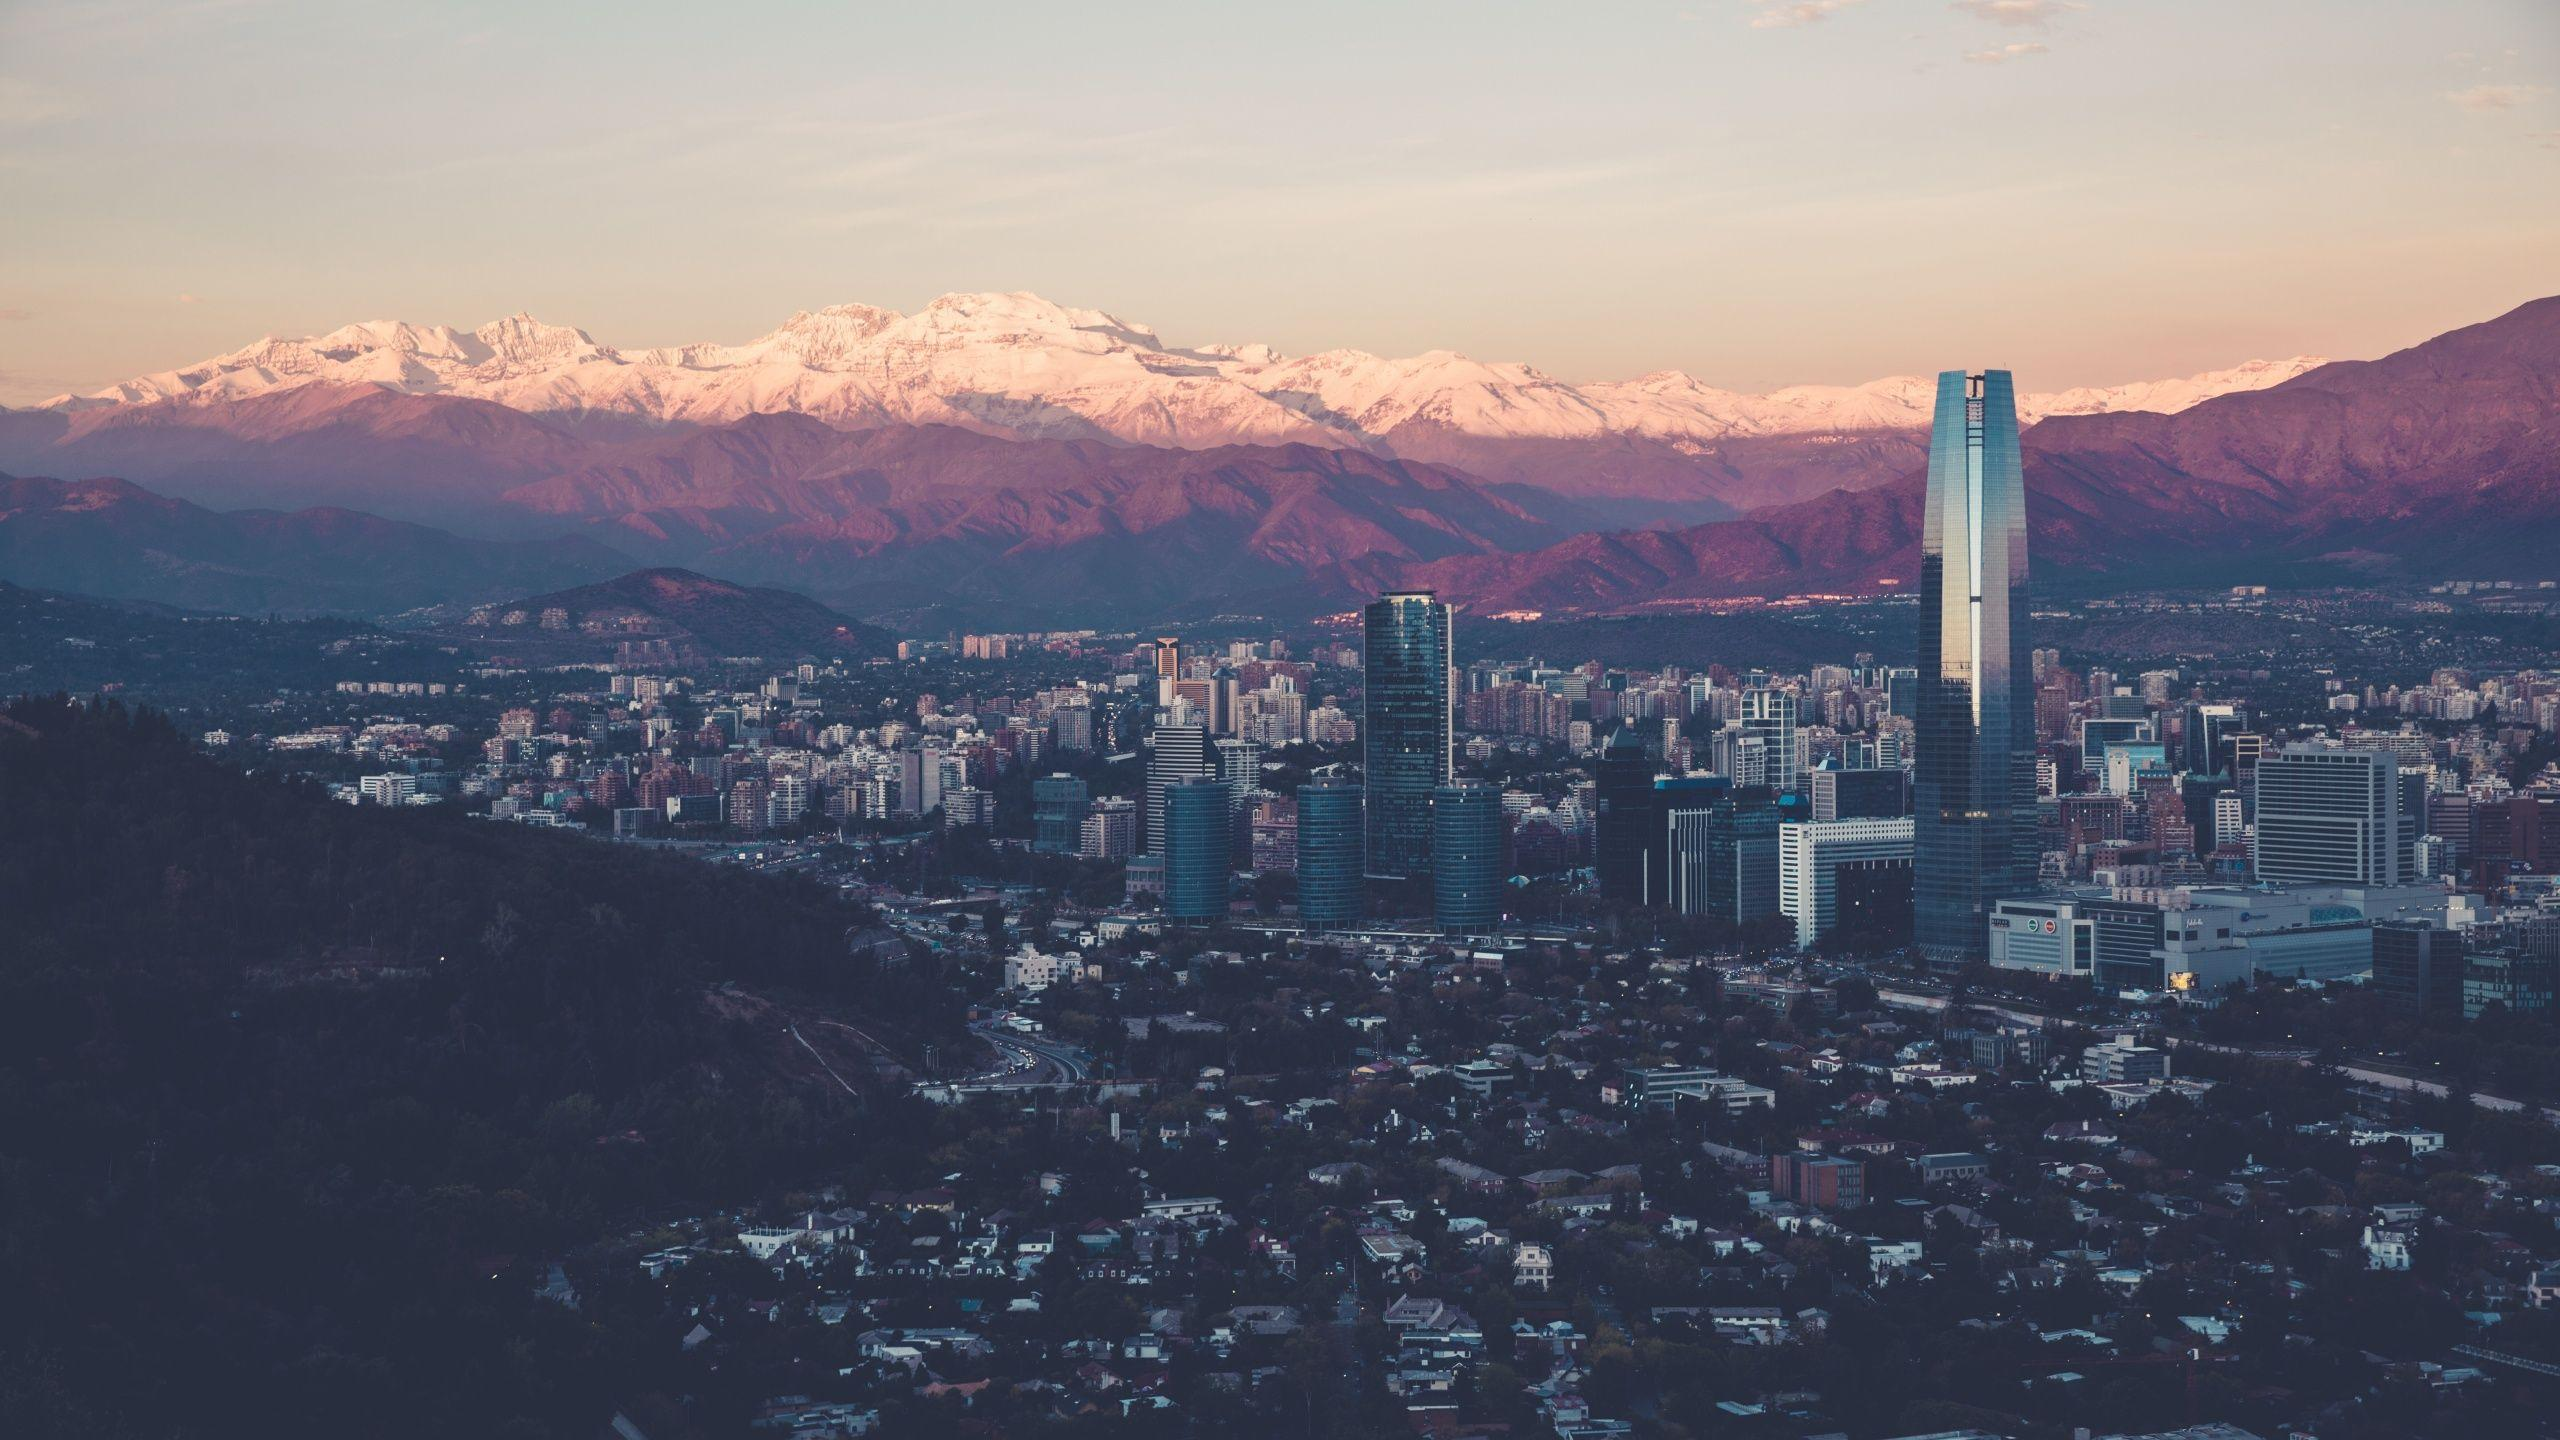 Santiago Cityscape And Mountains Wallpaper | 2560x1440 | ID:56572 ...